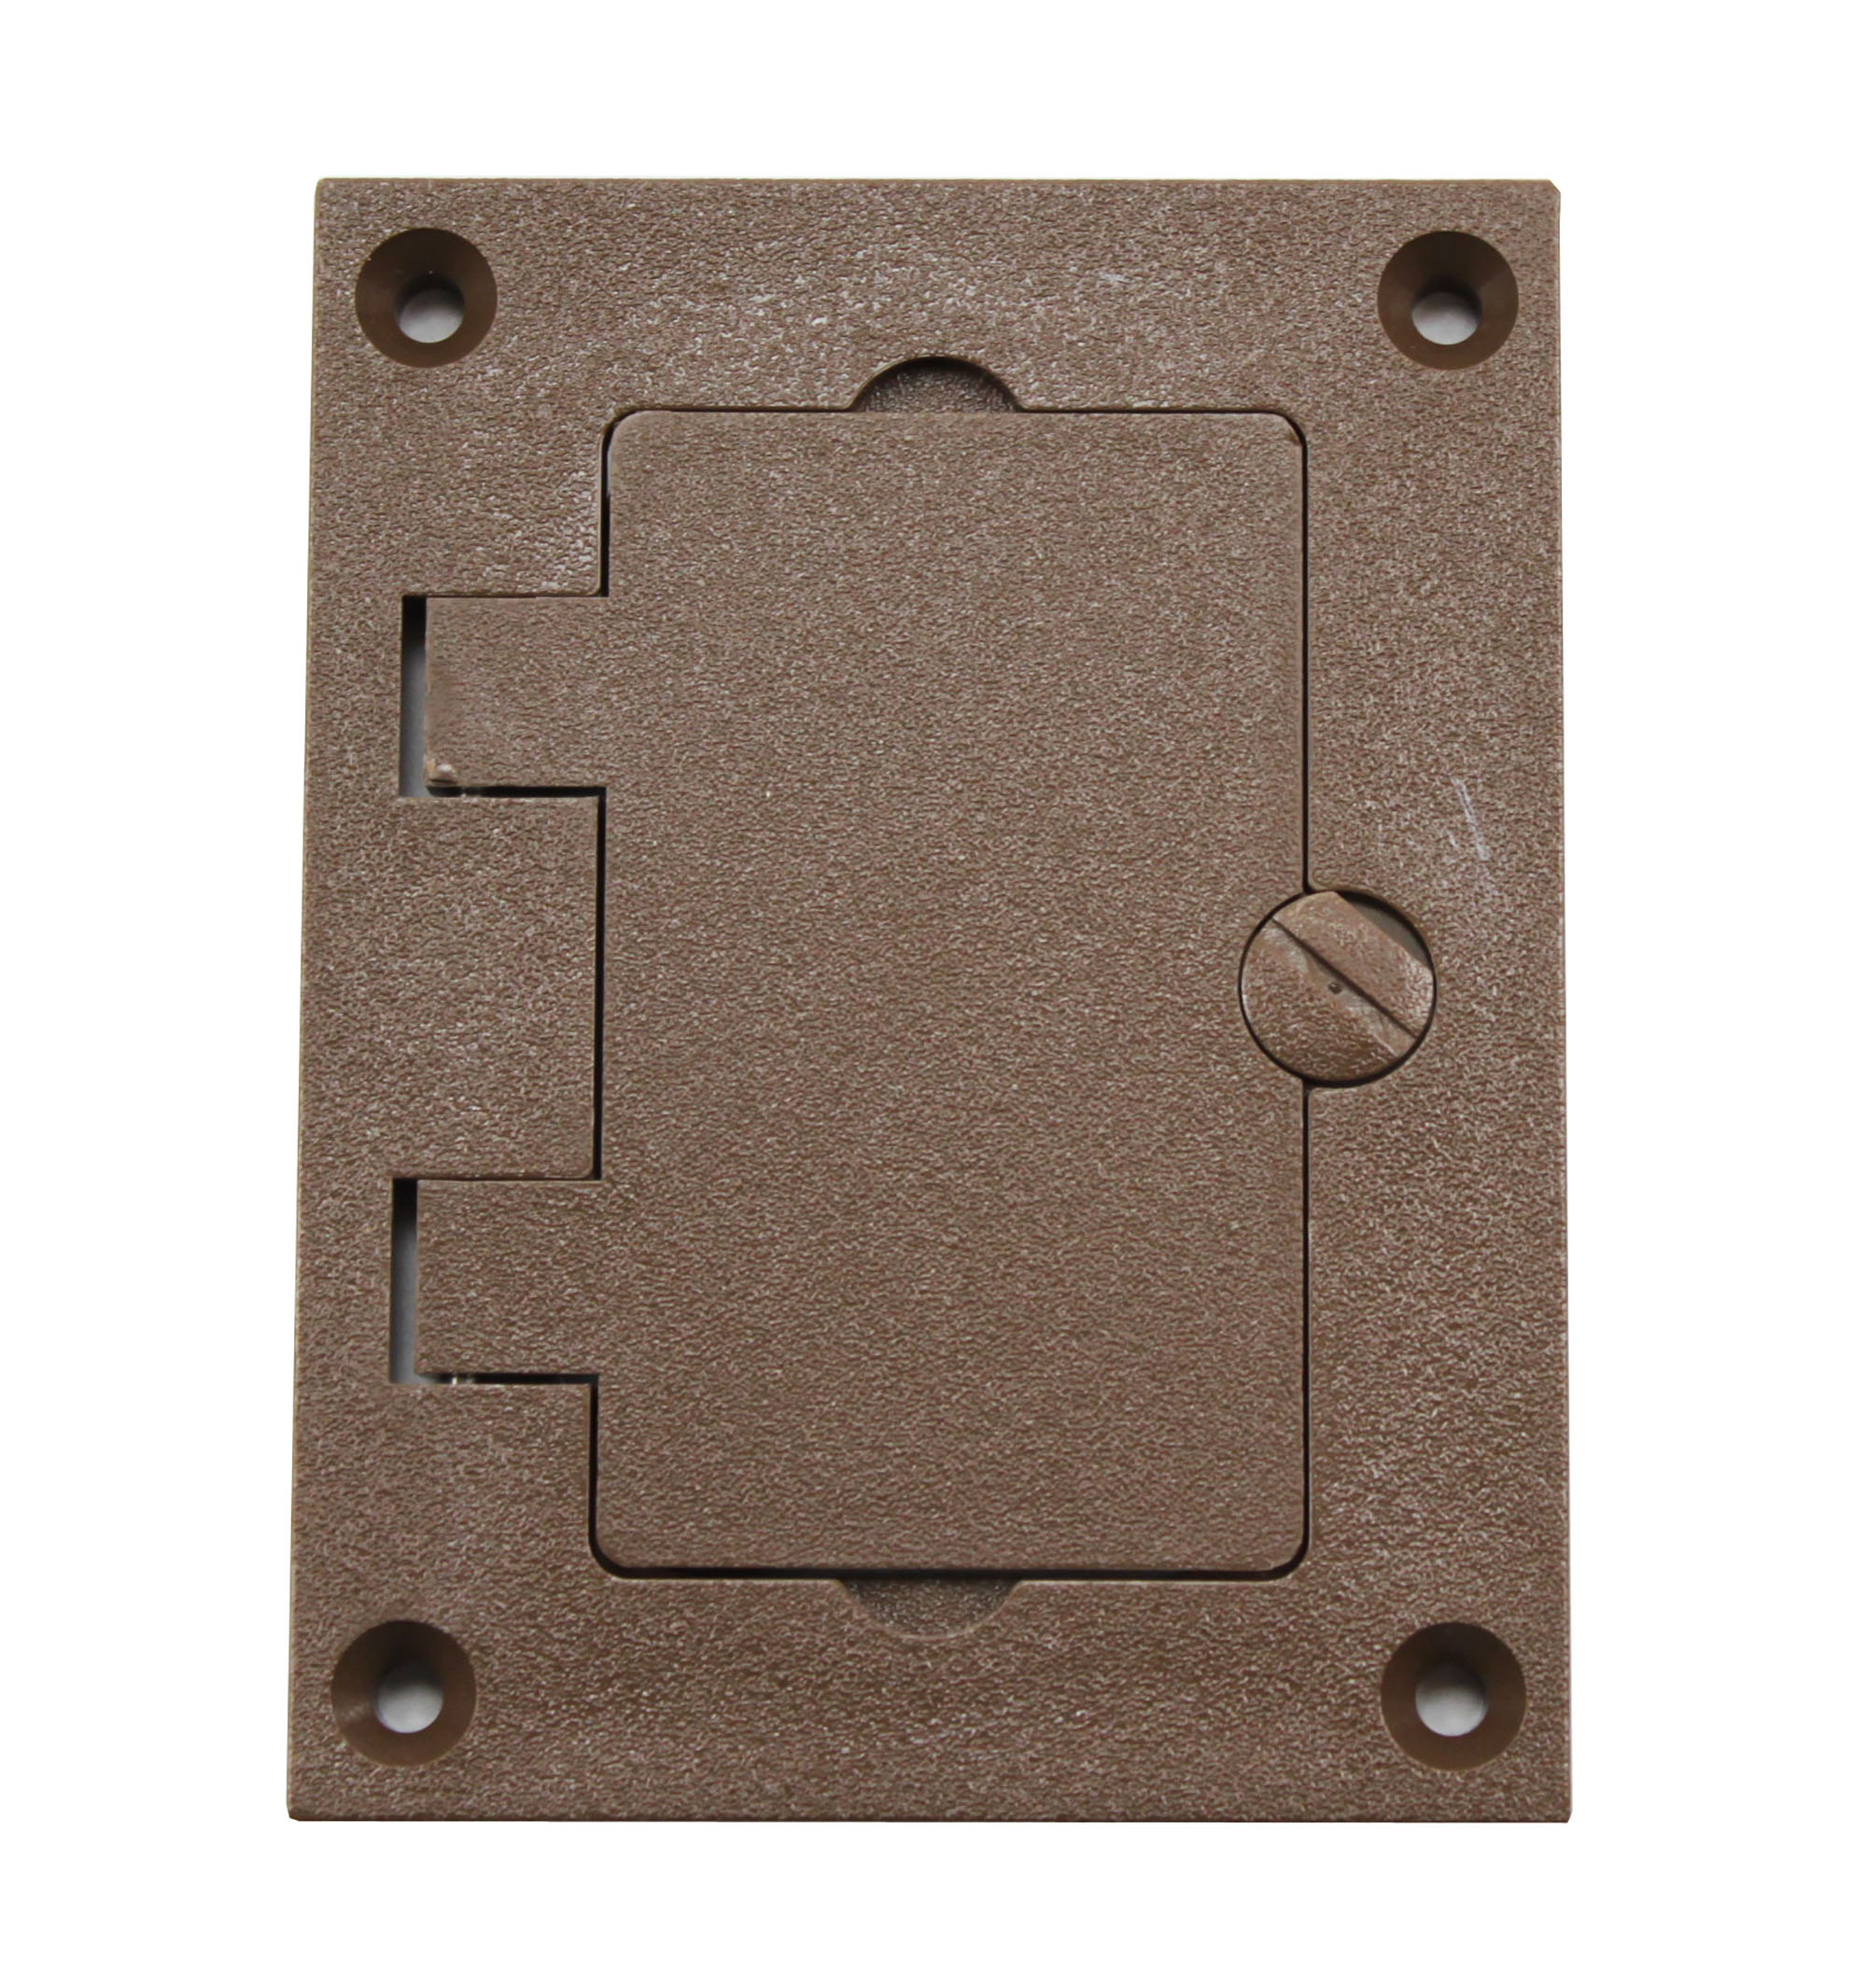 wiremold walker 828prgfi brn brown non metallic gfi plate cover ebay. Black Bedroom Furniture Sets. Home Design Ideas